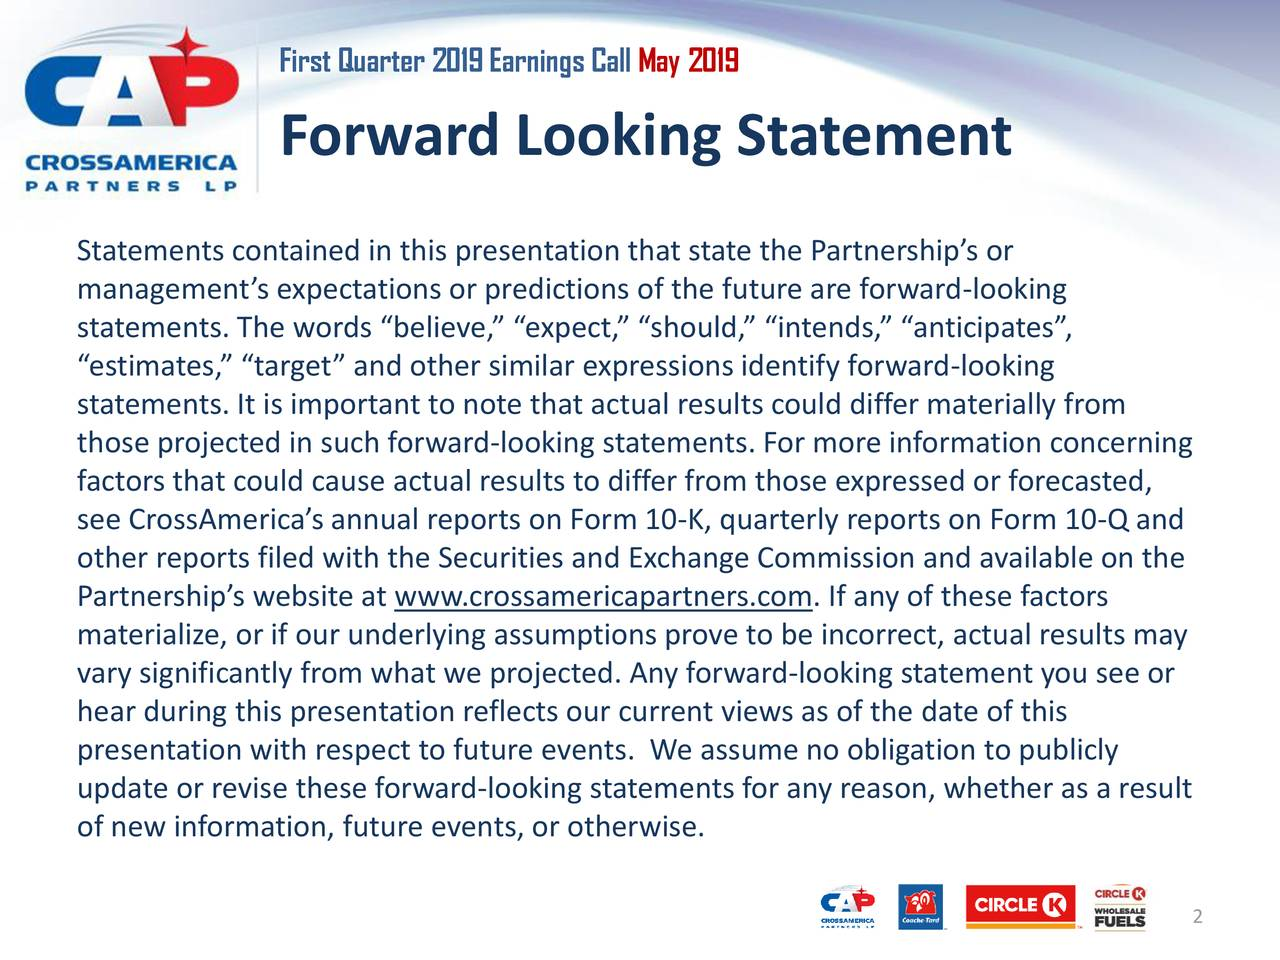 """Forward Looking Statement Statements contained in this presentation that state the Partnership's or management's expectations or predictions of the future are forward-looking statements. The words """"believe,"""" """"expect,"""" """"should,"""" """"intends,"""" """"anticipates"""", """"estimates,"""" """"target"""" and other similar expressions identify forward-looking statements. It is important to note that actual results could differ materially from those projected in such forward-looking statements. For more information concerning factors that could cause actual results to differ from those expressed or forecasted, see CrossAmerica's annual reports on Form 10-K, quarterly reports on Form 10-Q and other reports filed with the Securities and Exchange Commission and available on the Partnership's website at www.crossamericapartners.com. If any of these factors materialize, or if our underlying assumptions prove to be incorrect, actual results may vary significantly from what we projected. Any forward-looking statement you see or hear during this presentation reflects our current views as of the date of this presentation with respect to future events. We assume no obligation to publicly update or revise these forward-looking statements for any reason, whether as a result of new information, future events, or otherwise. 2"""